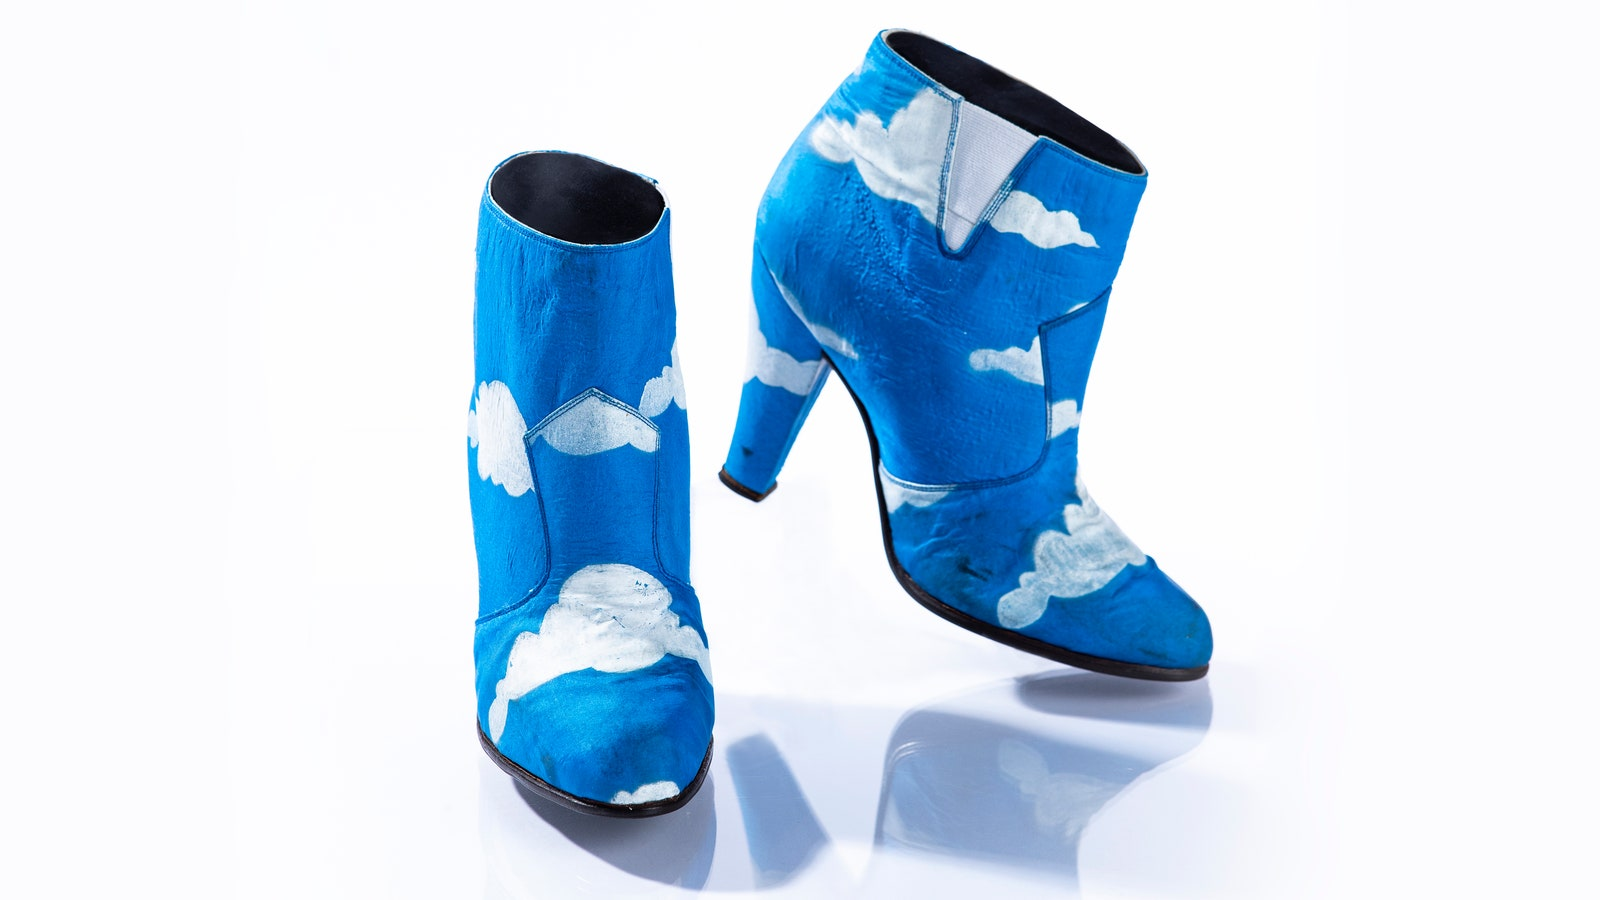 """The cloud-painted blue shoes from the """"Raspberry Beret"""" music video"""